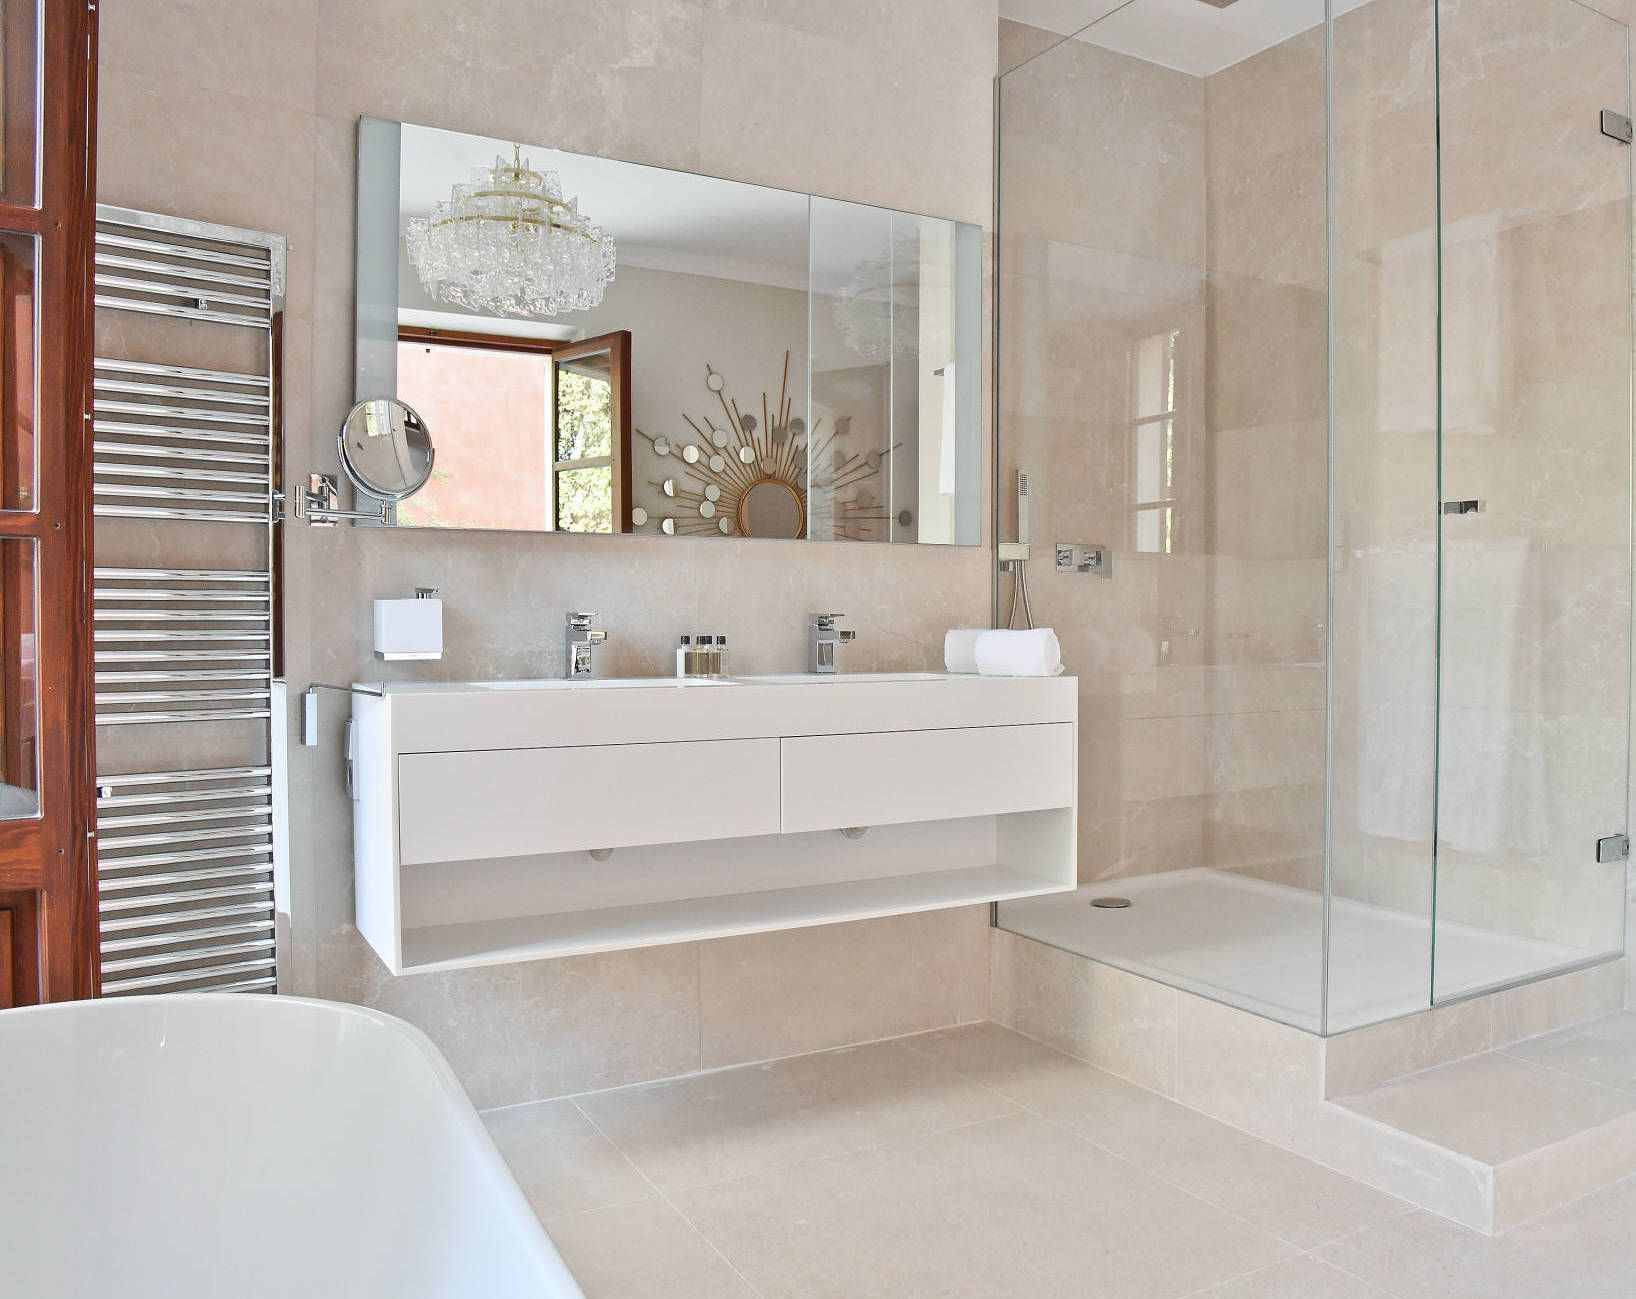 21 Suggestions of Shower Room Remodels for Tiny Rooms You